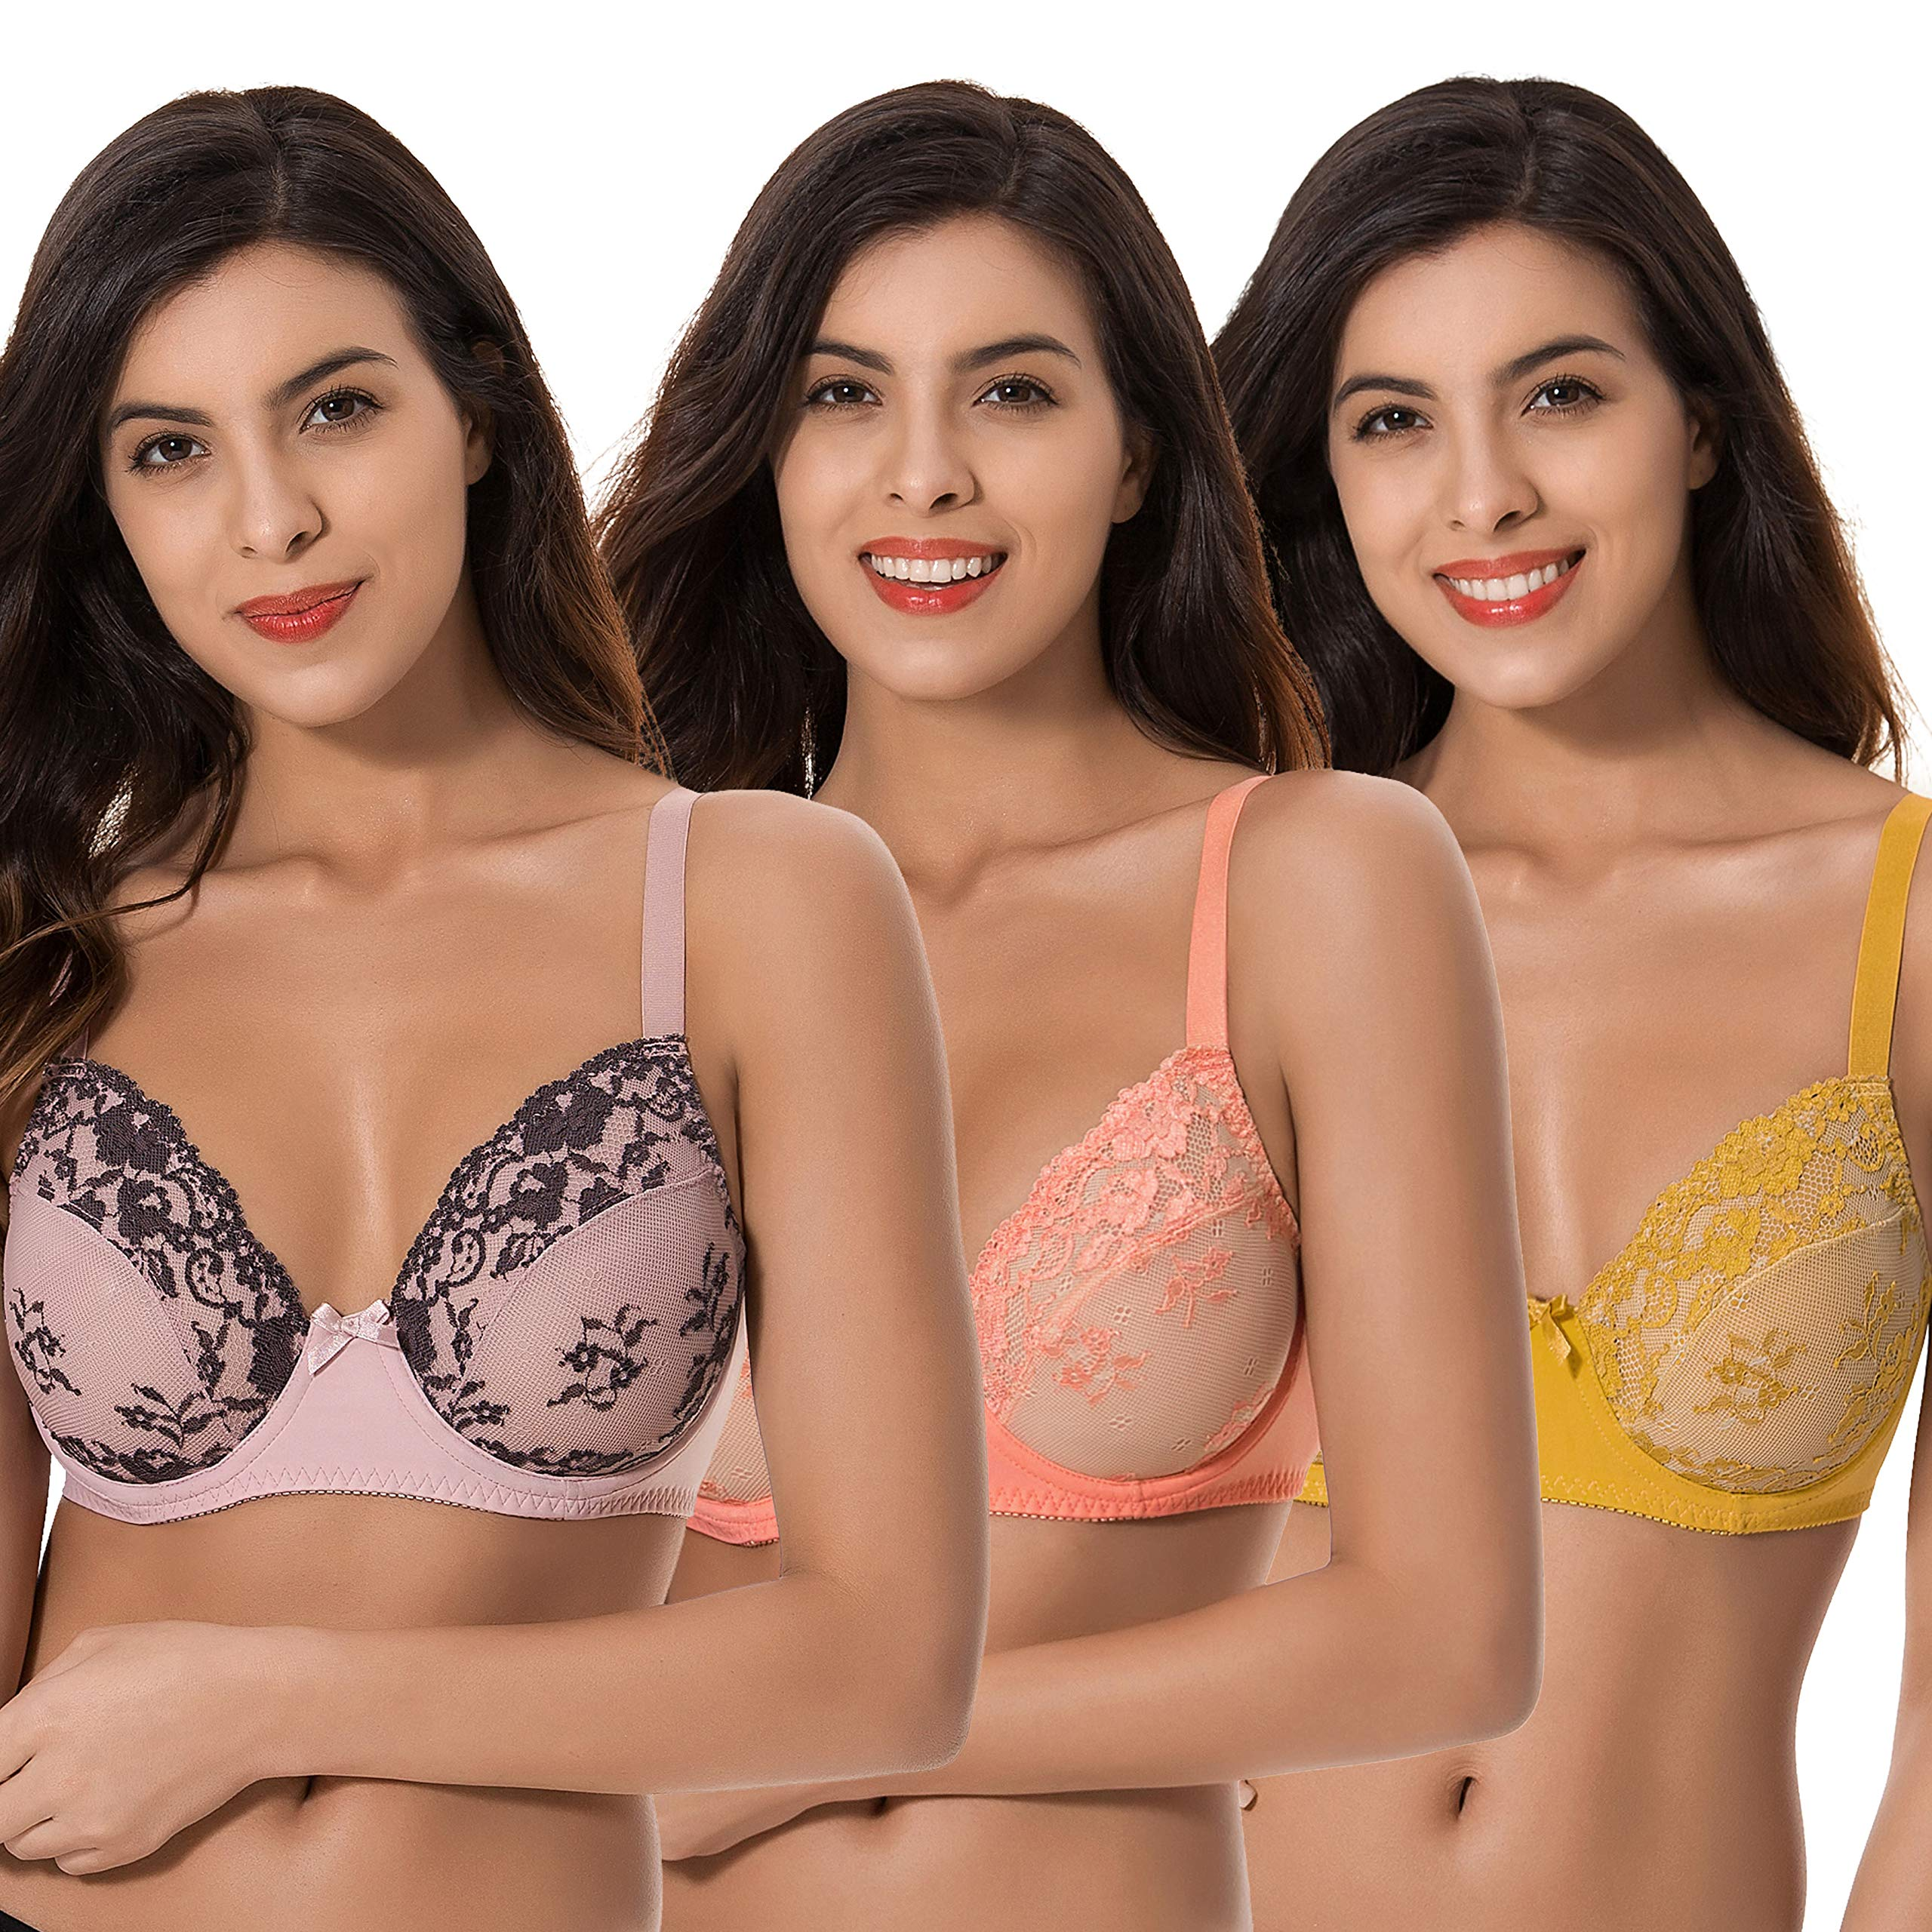 Curve Muse 3 Pack Plus Size Unlined Semi-Sheer Balconette Underwire Lace Bra